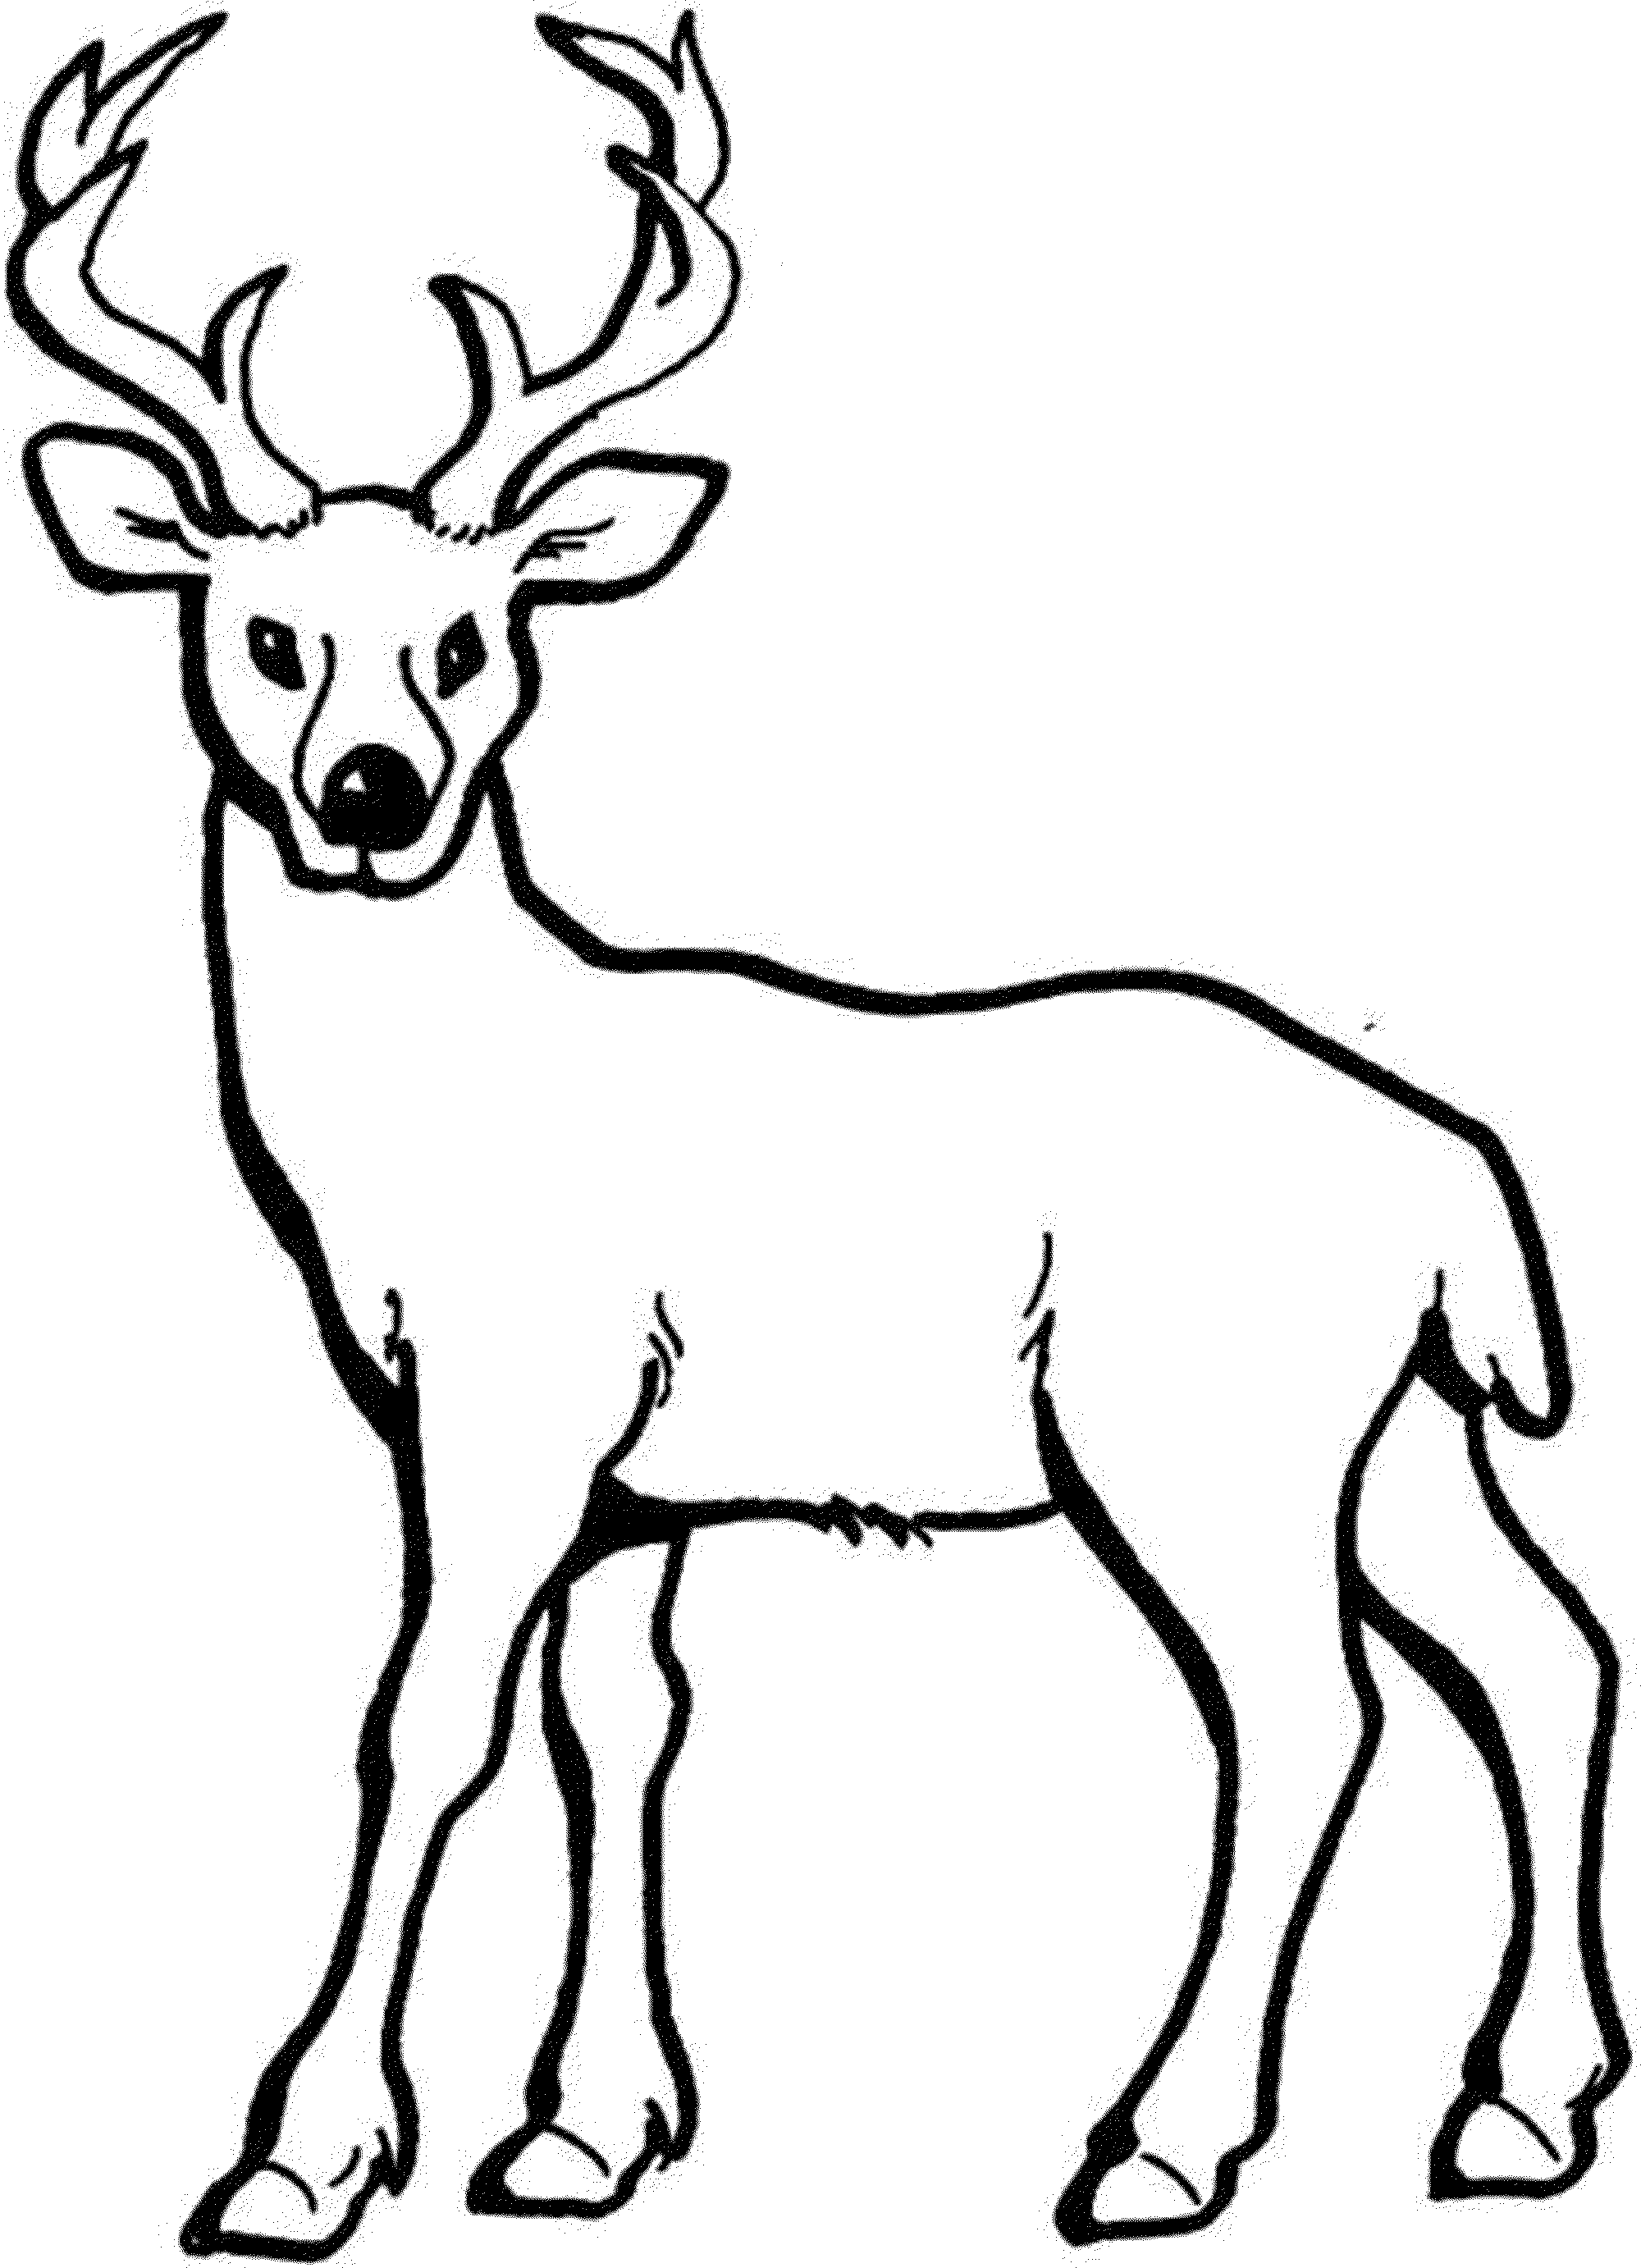 2000x2764 Deer Coloring Page Pages Of Printable Kids Colouring Drawings